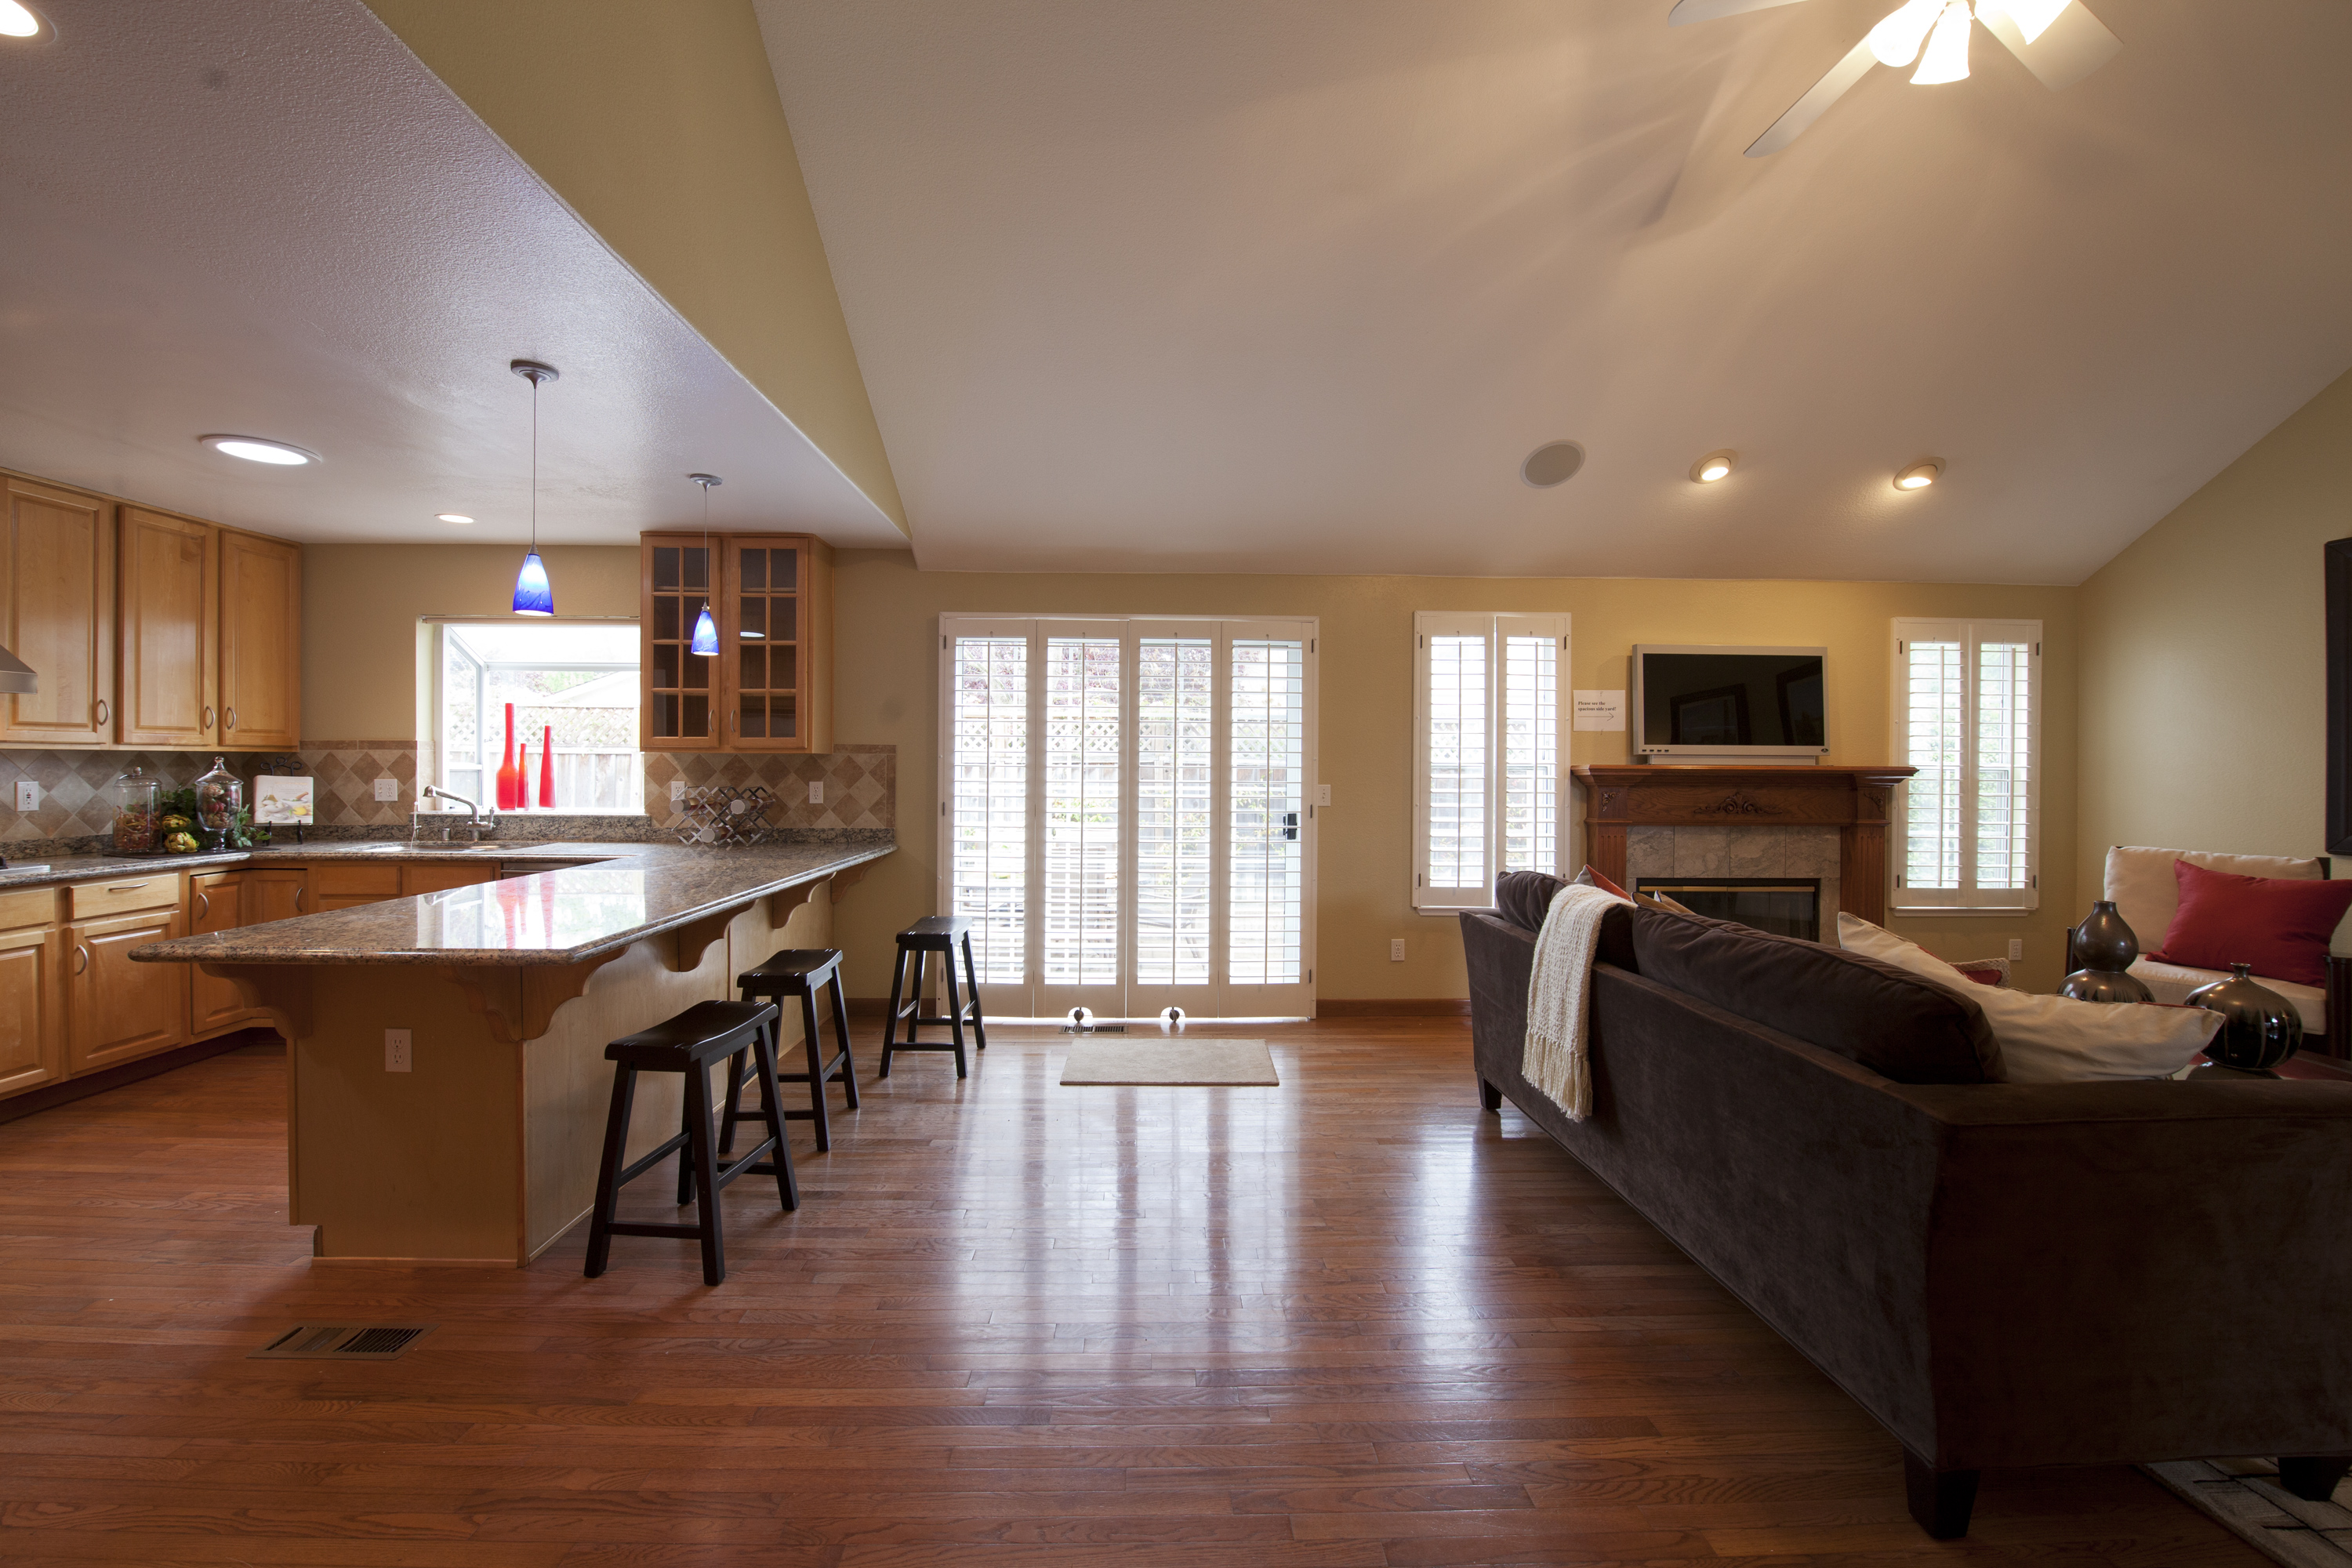 Stunning 18 Images Kitchen Family Room Designs - House Plans